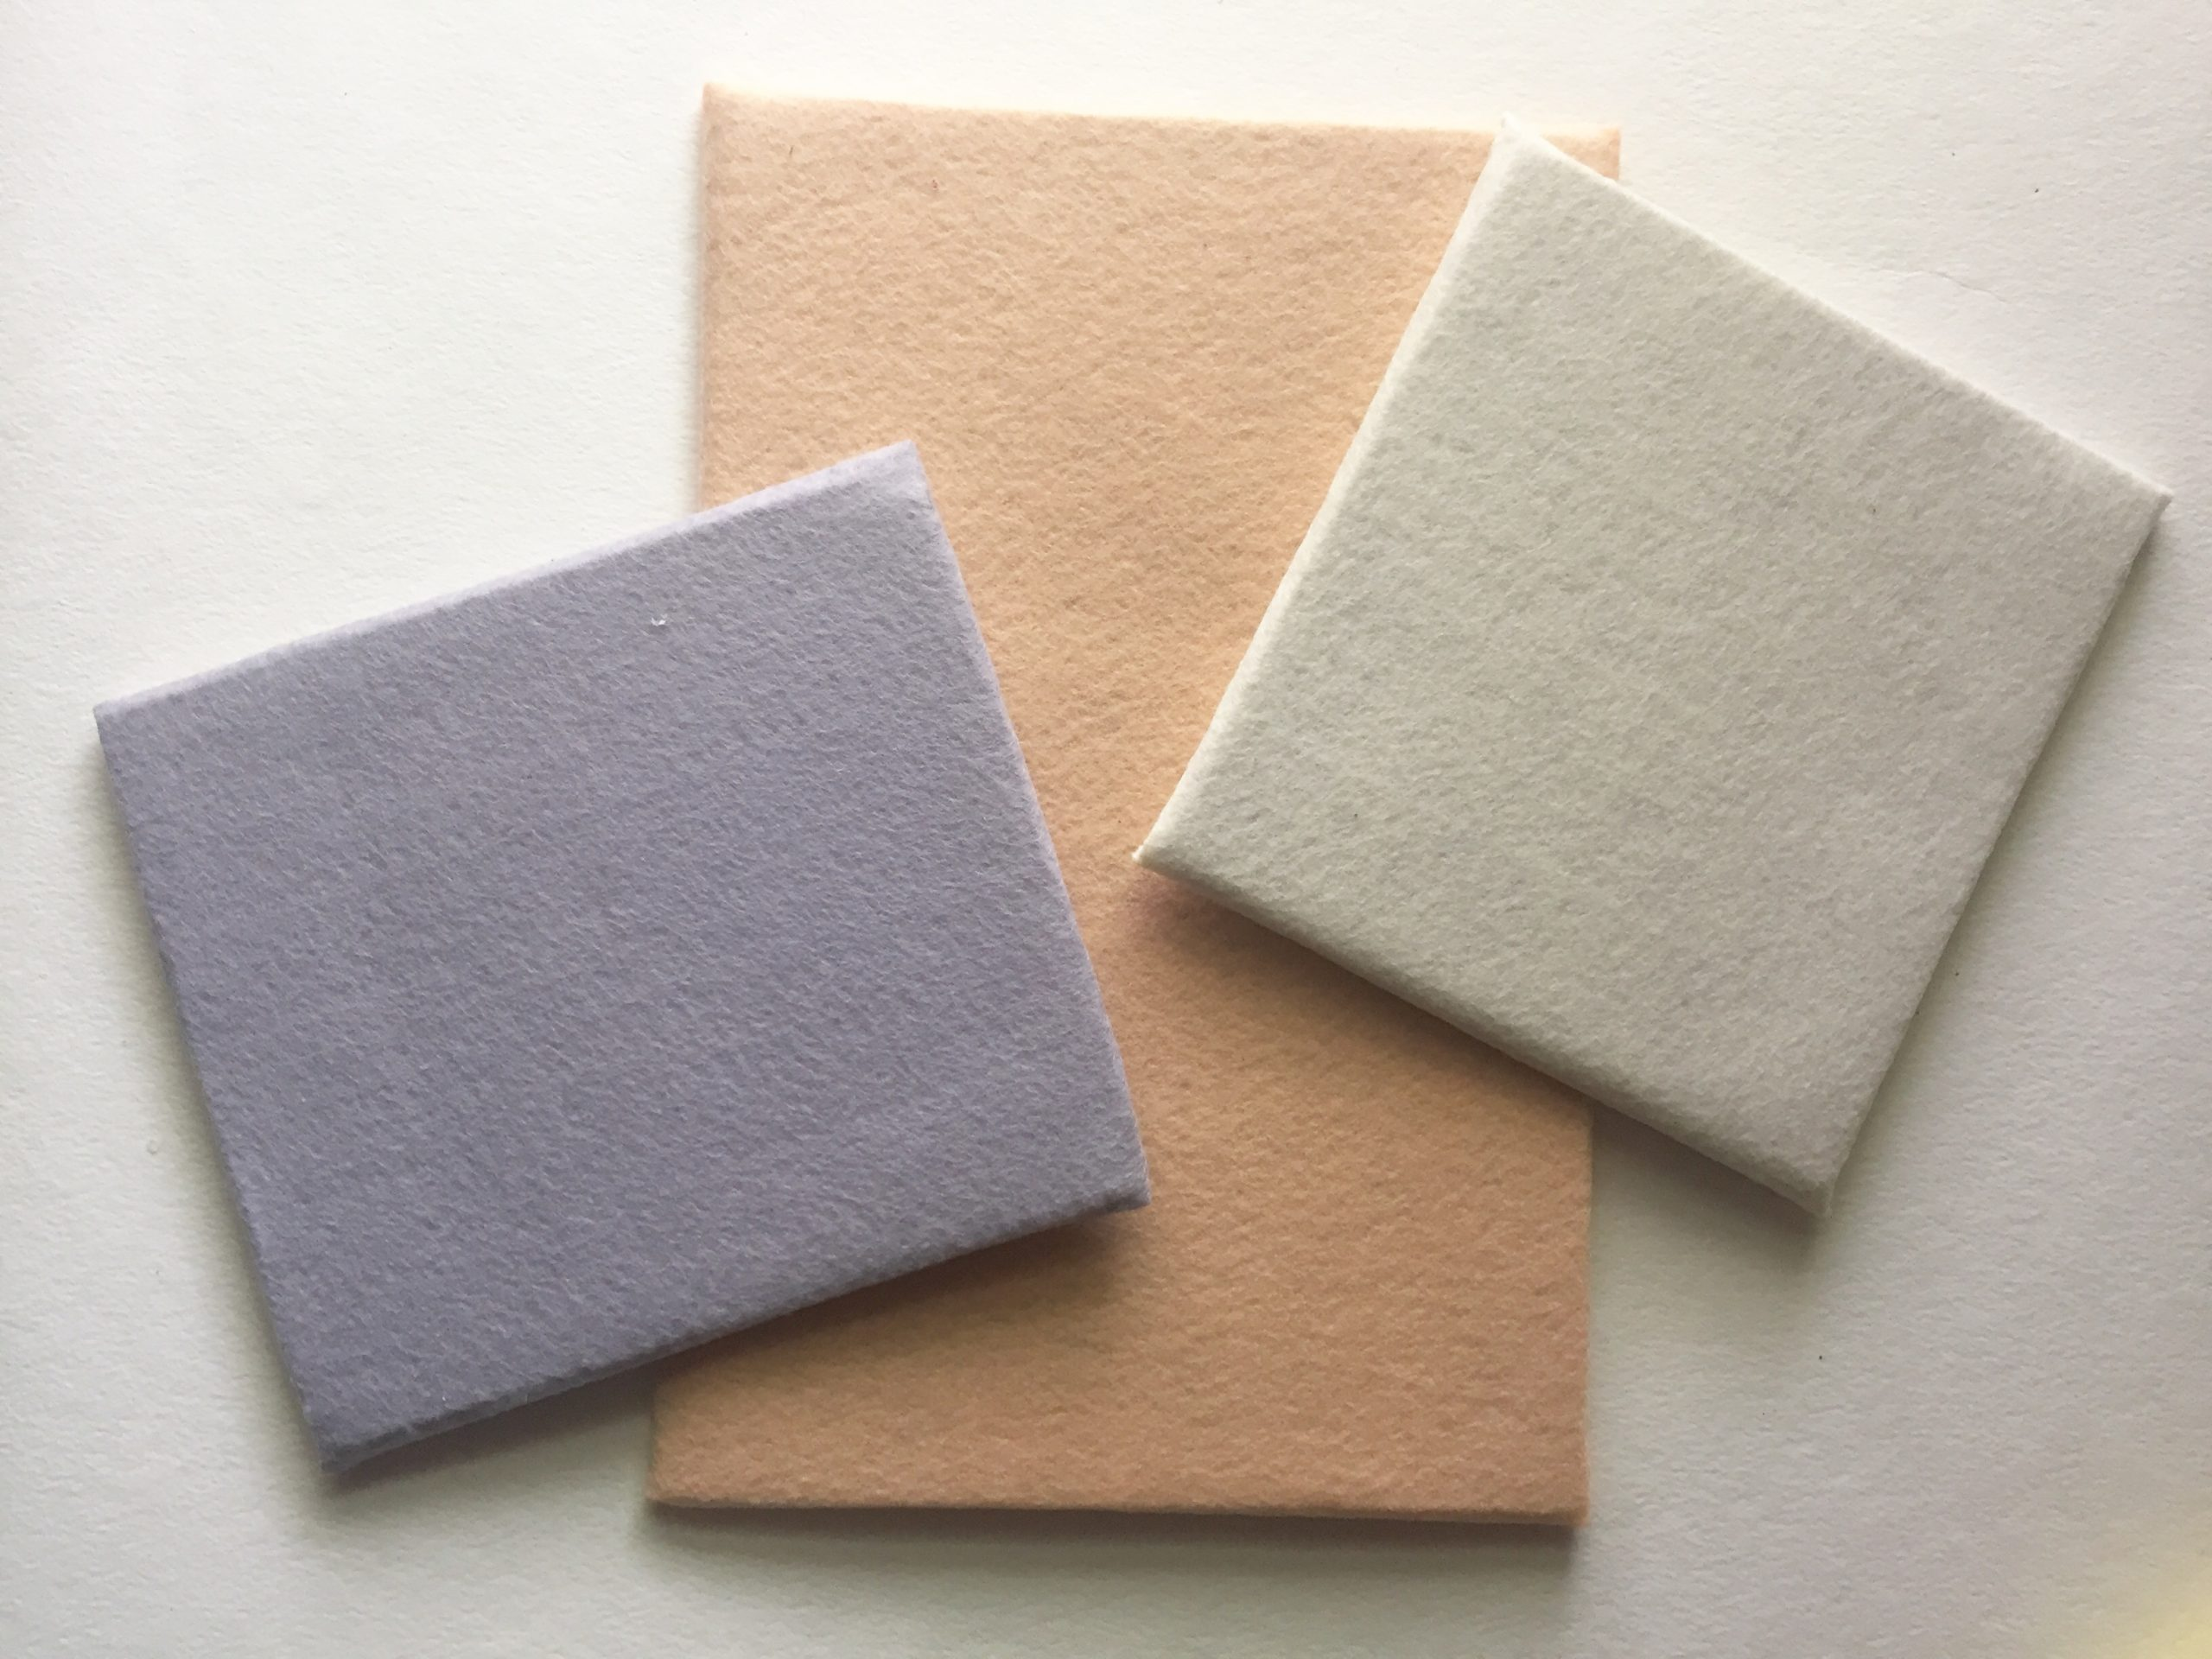 Three finished felt boards are displayed